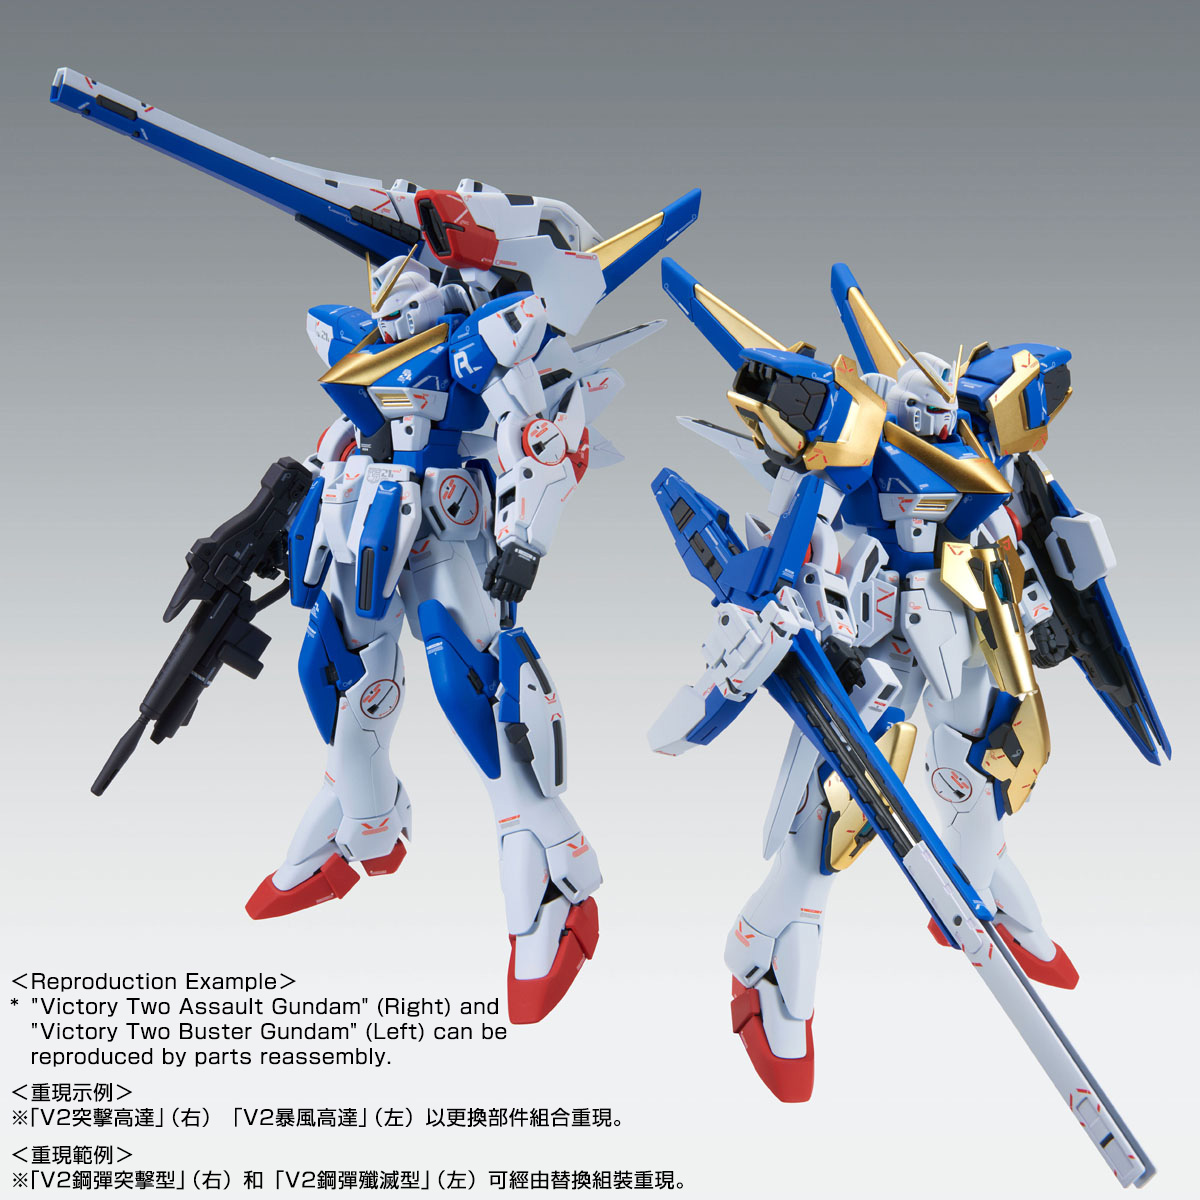 MG 1/100 VICTORY TWO ASSAULT BUSTER GUNDAM Ver Ka | PREMIUM